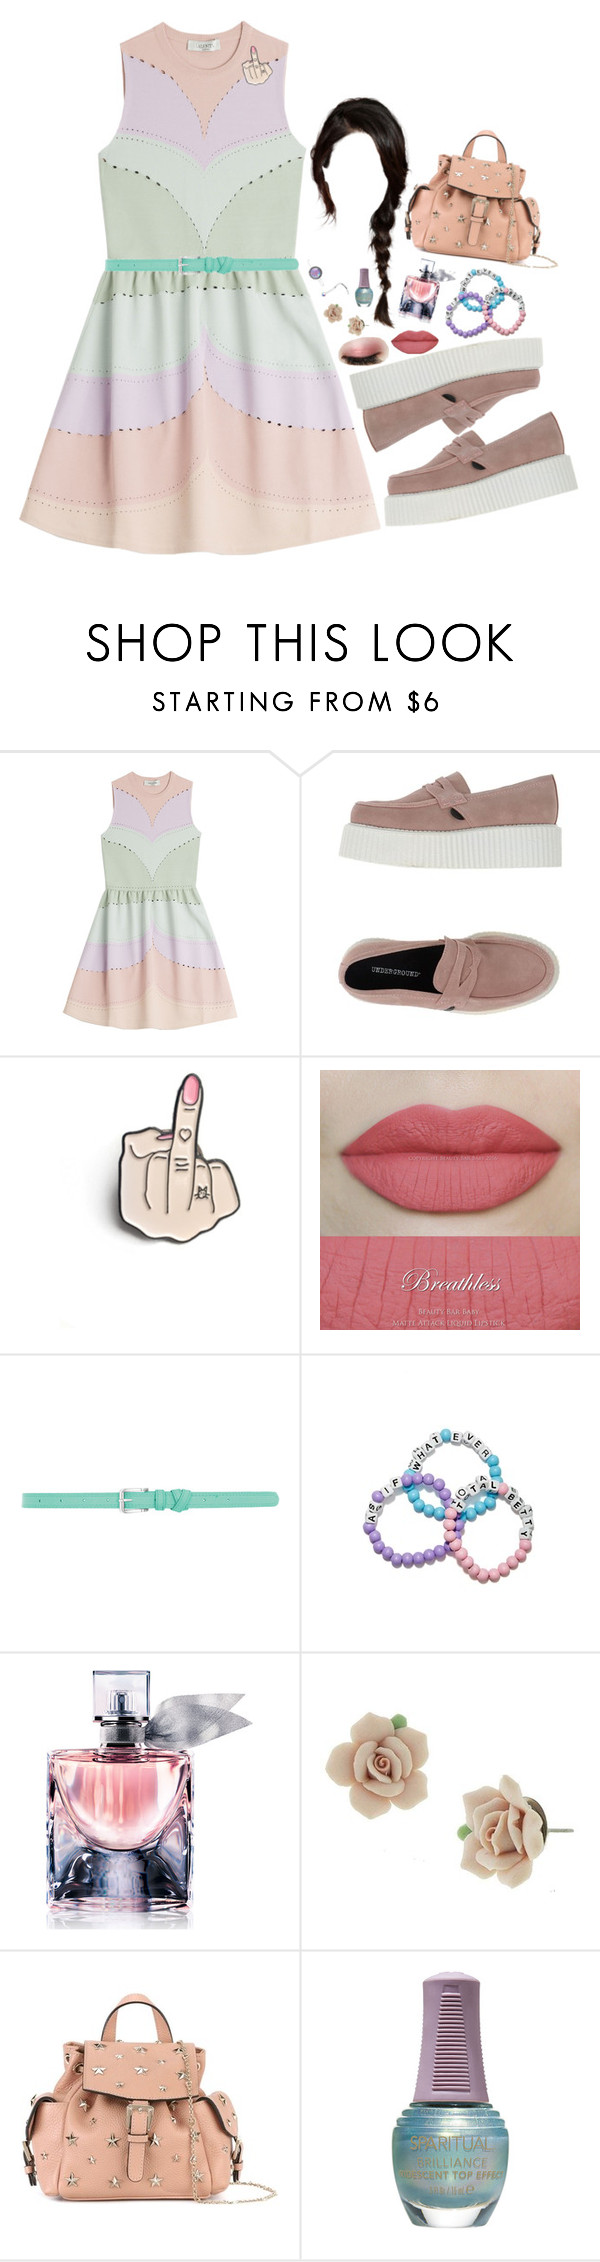 """You take things so hard and then you fall apart"" by oblivionsgarden ❤ liked on Polyvore featuring Valentino, Underground, Dorothy Perkins, Lancôme, 1928, RED Valentino and SpaRitual"